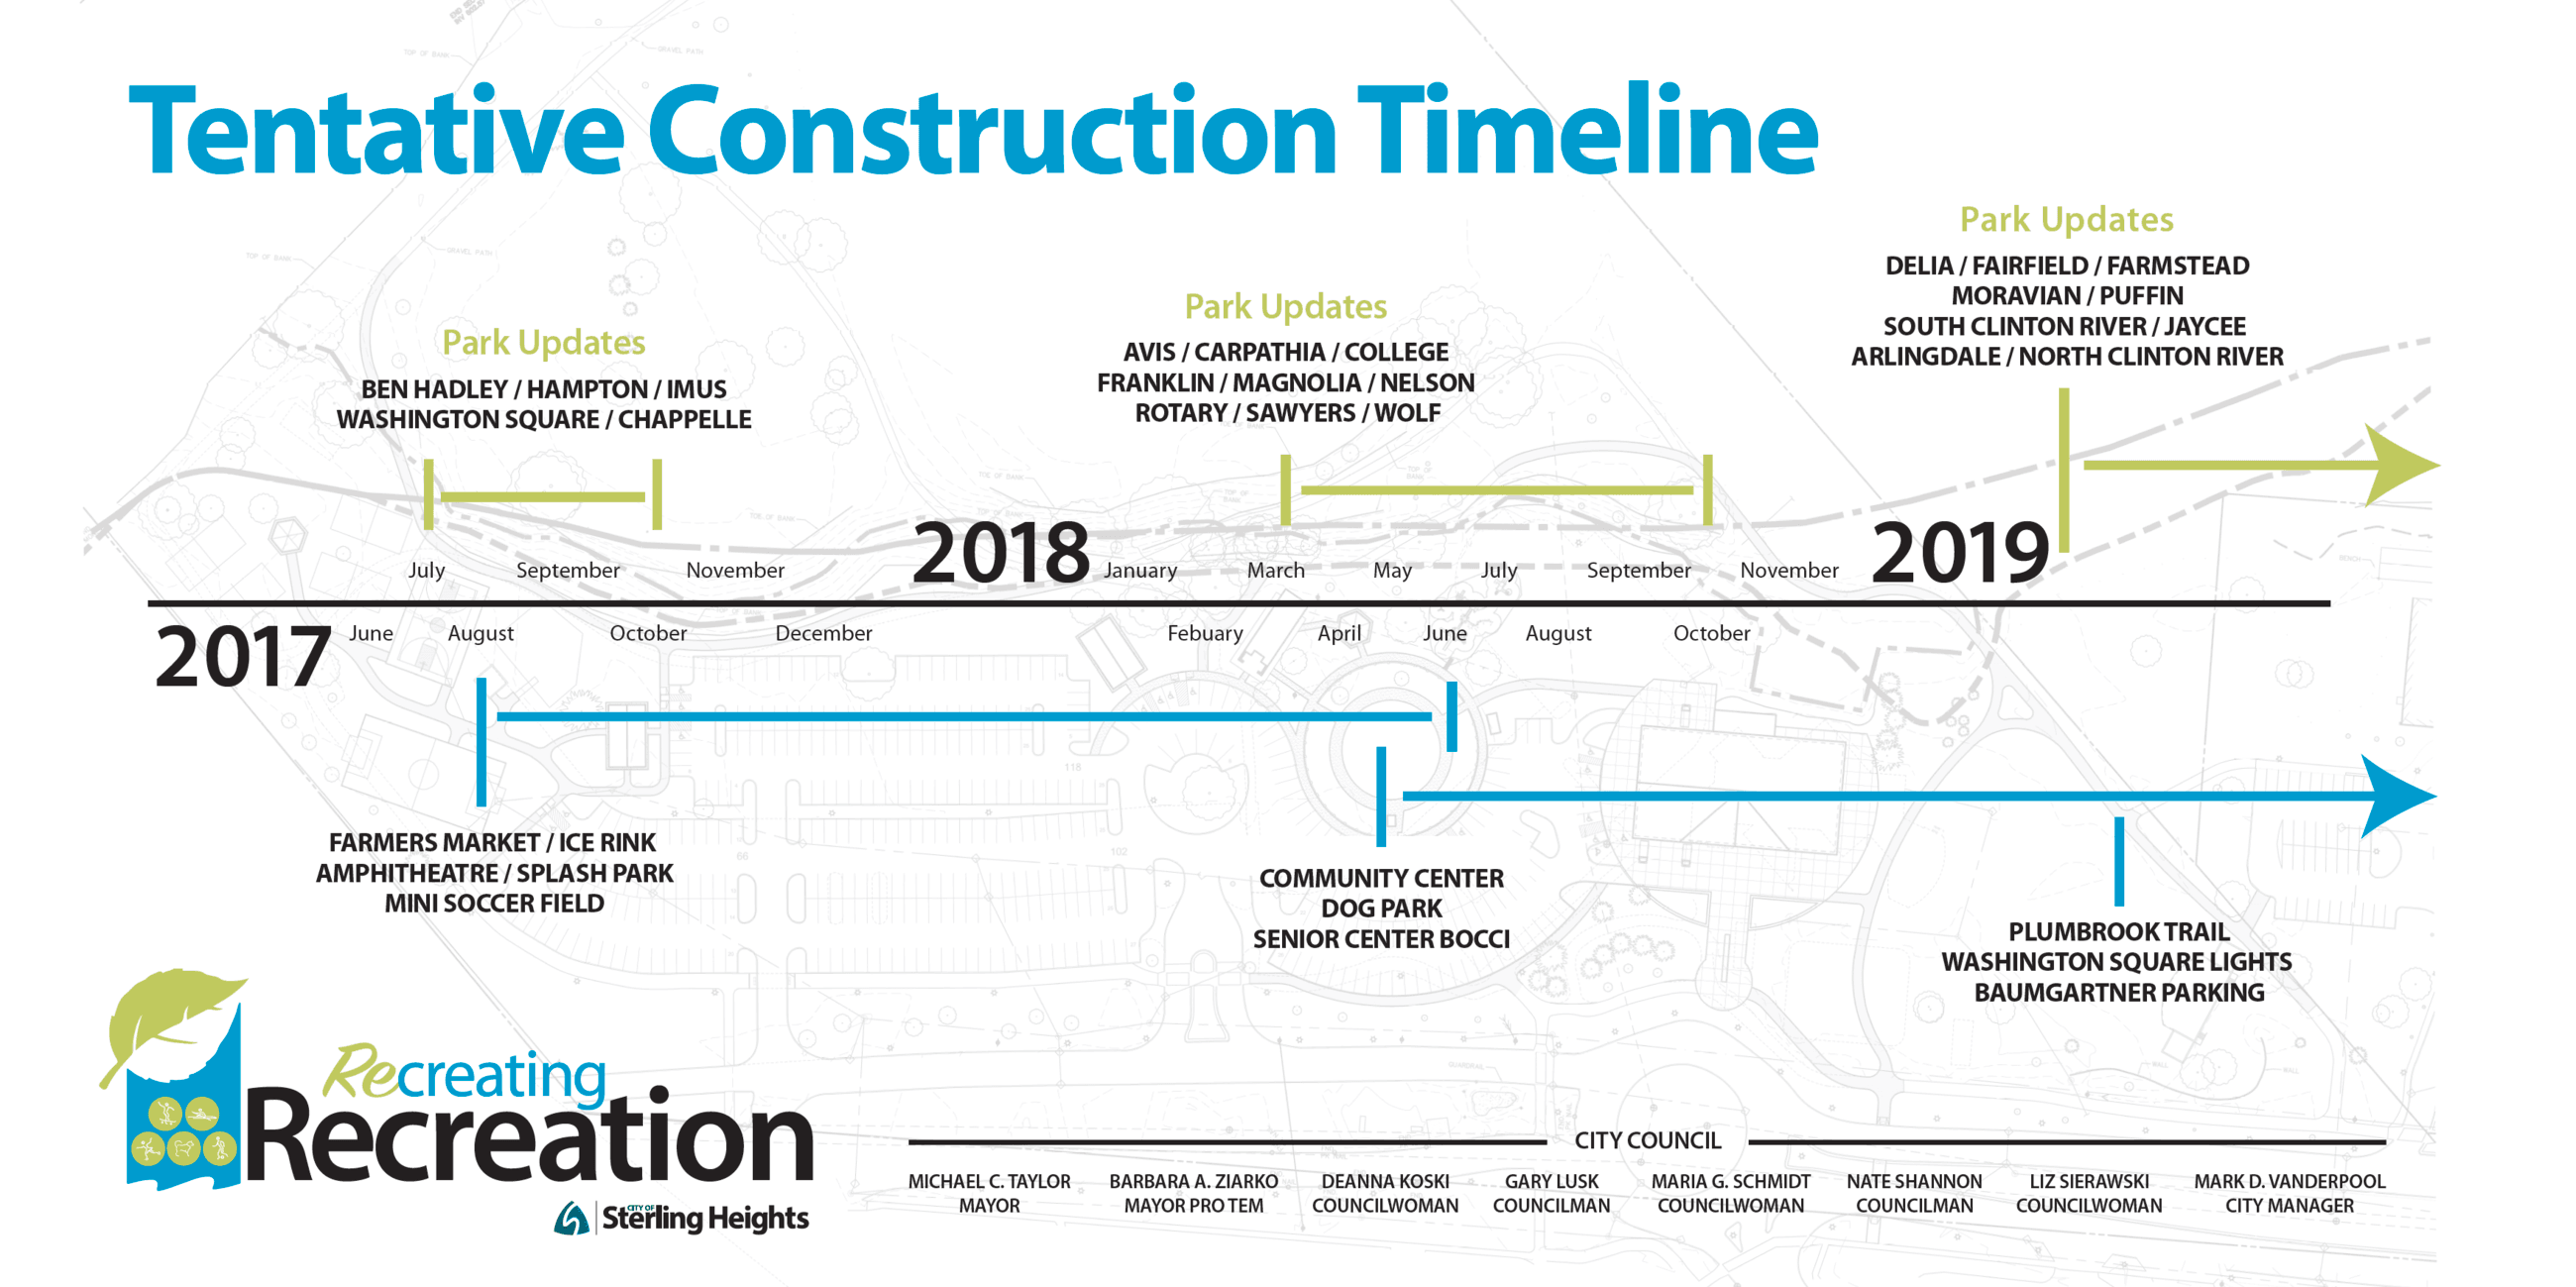 RecreatingRecreation Timeline